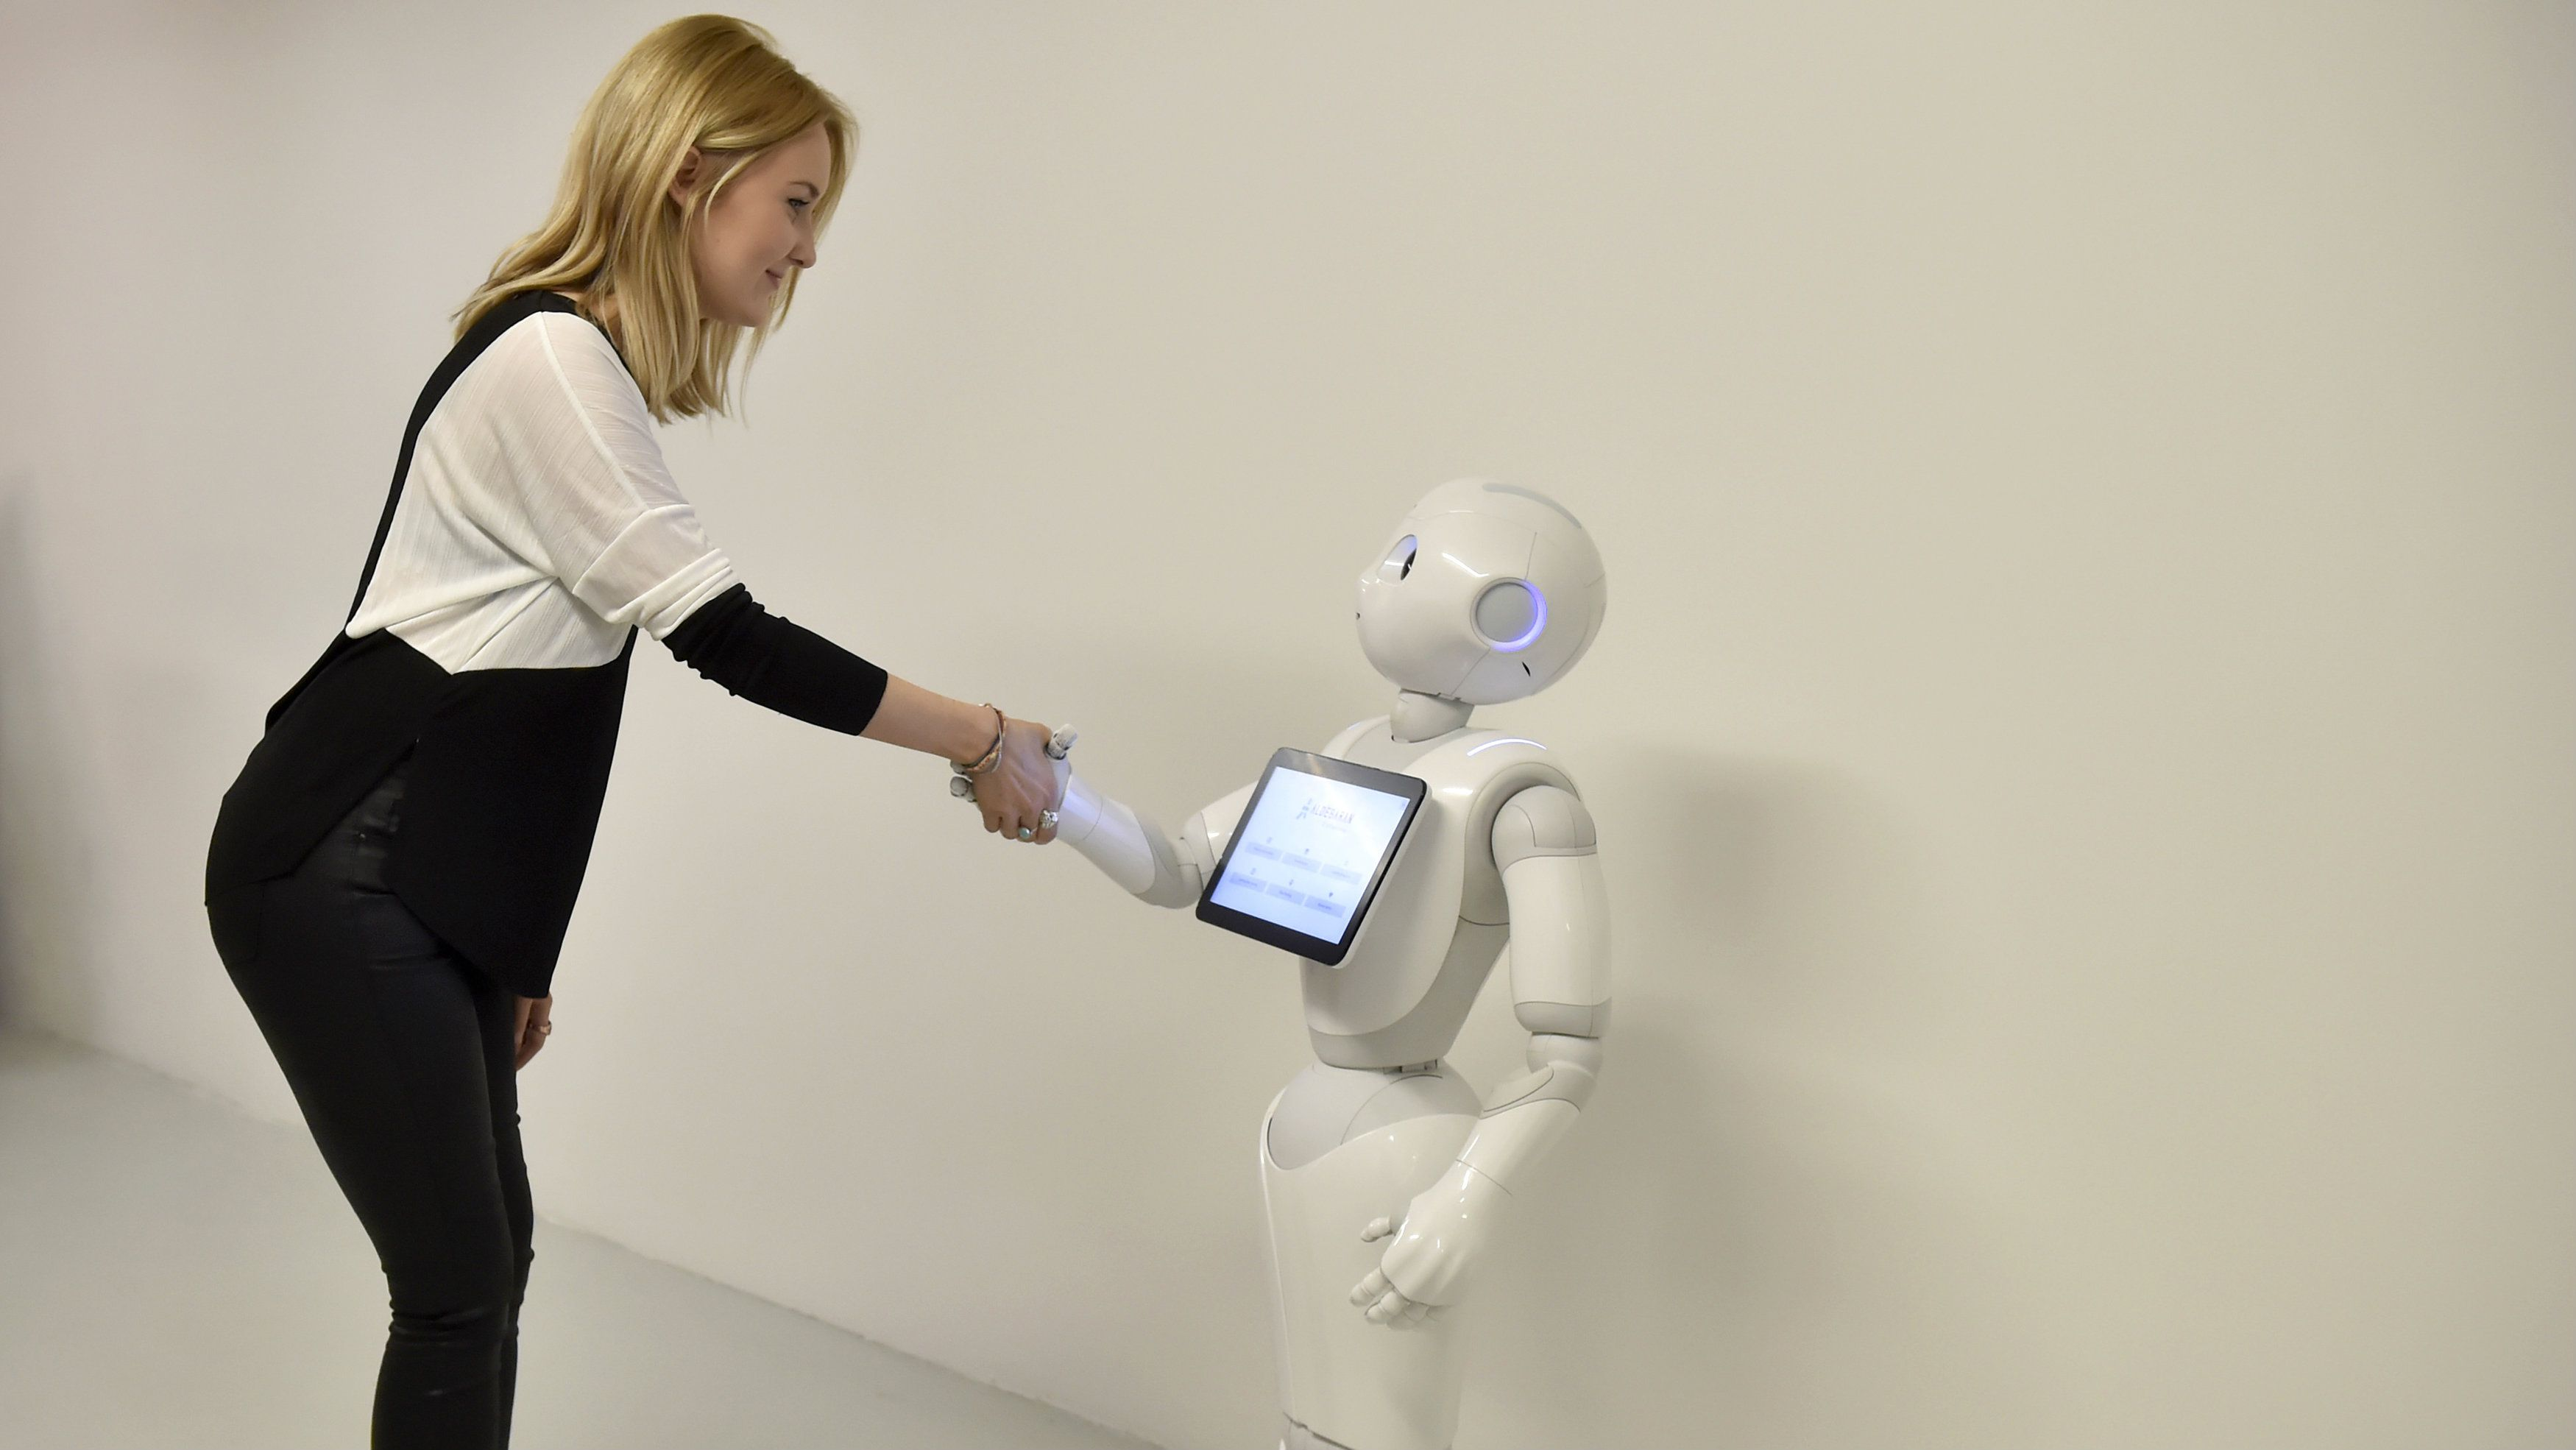 A press officer poses with 'Pepper' the Humanoid Robot at the 'World of Me: Store of the near future installation' in London, Britain, April 13, 2016.